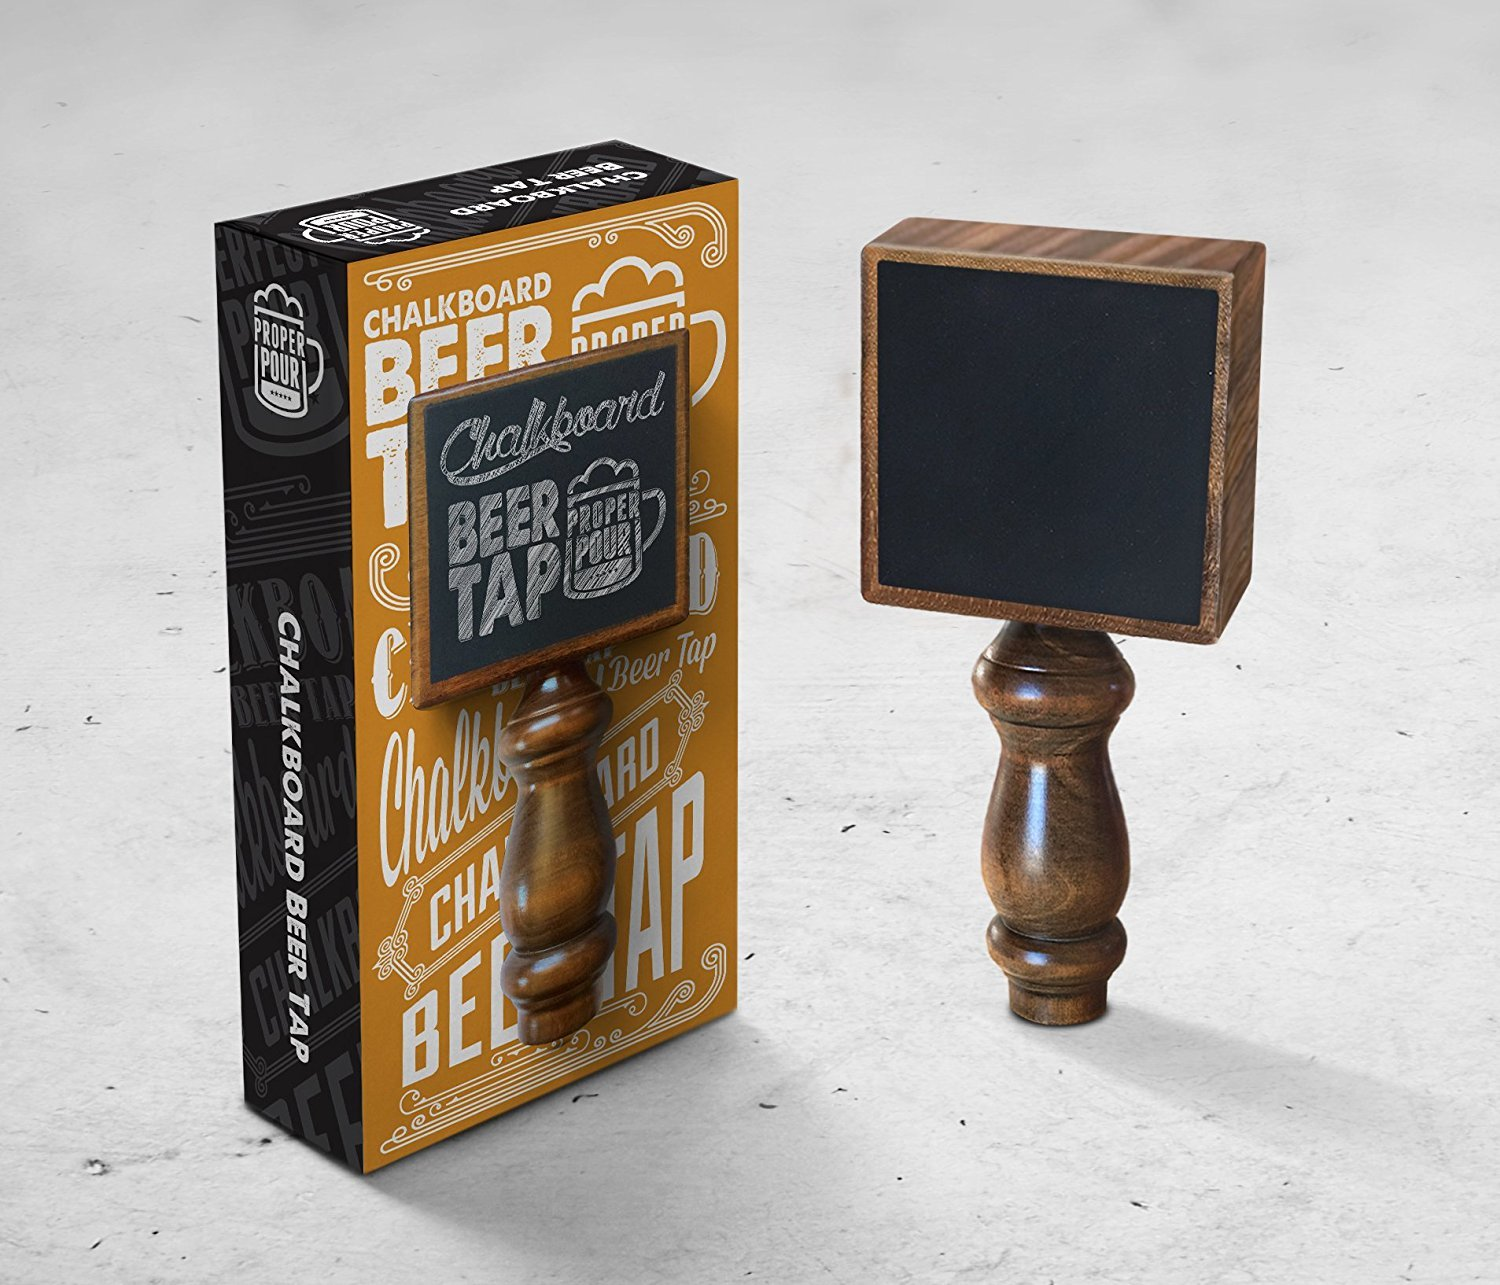 Proper Pour Chalkboard Beer Tap Handle Display Made of Wood for Kegerator